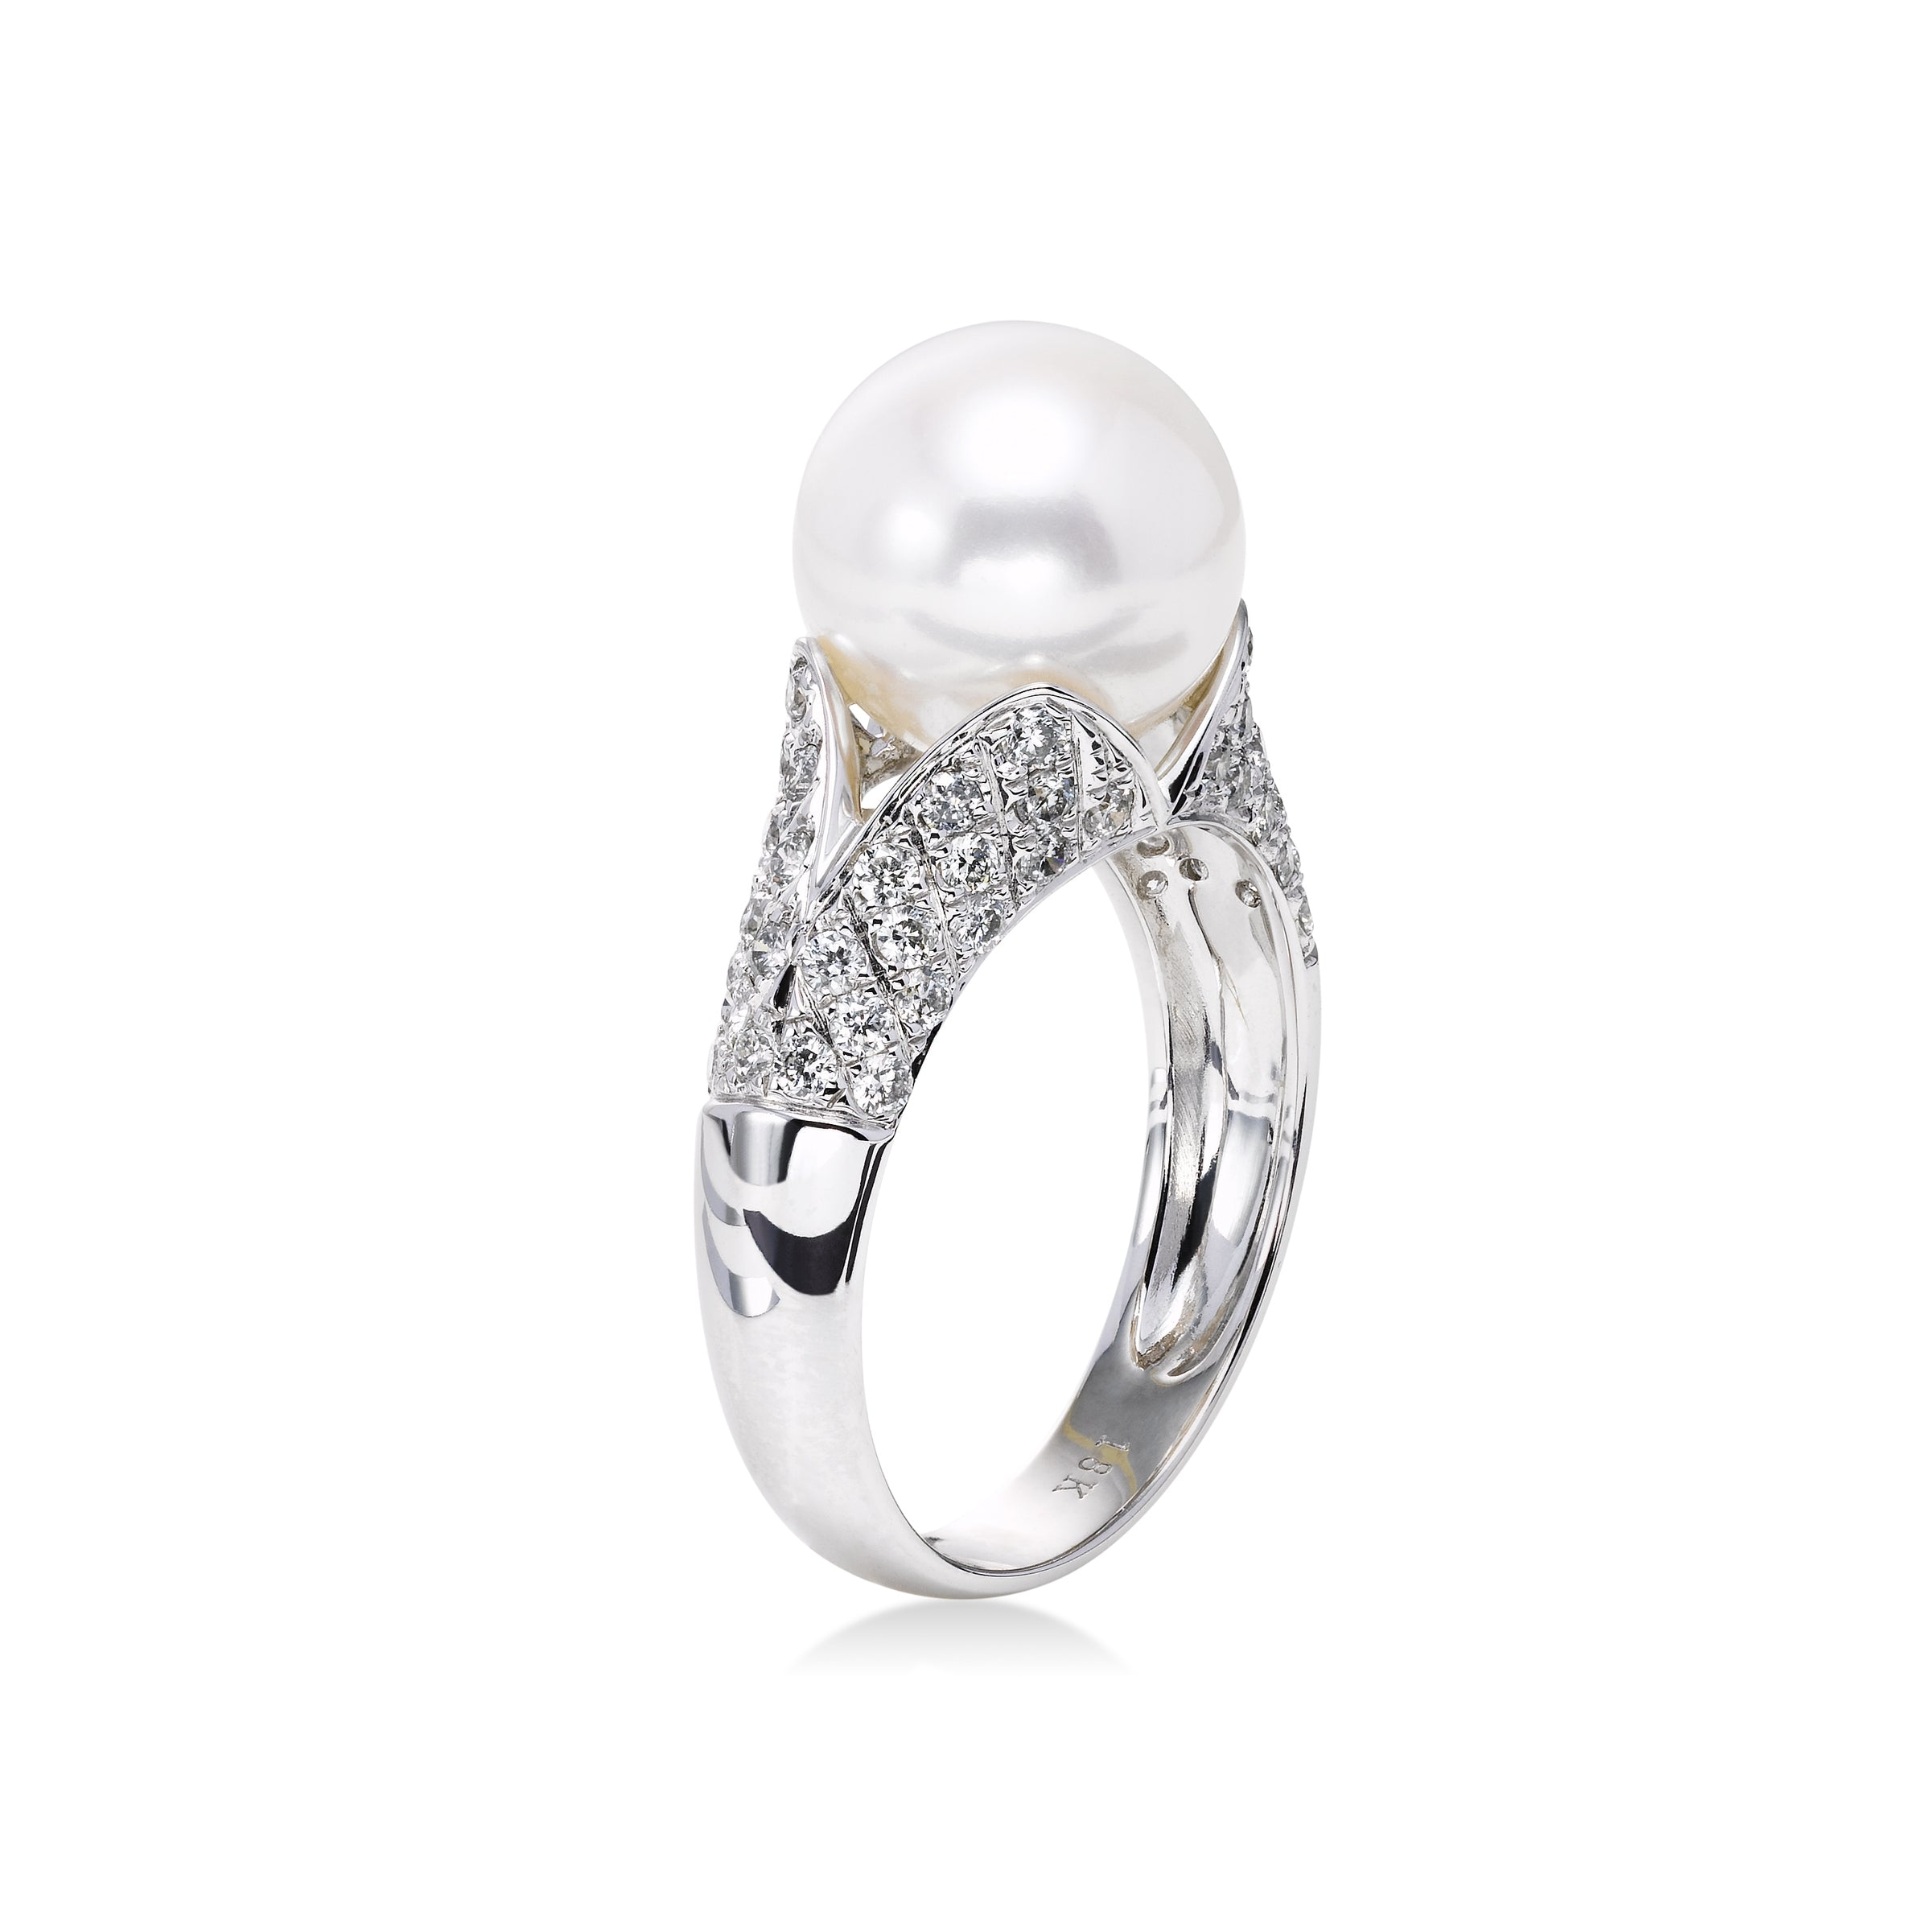 Freshwater Cultured Pearl and Diamond Ring, 18K White Gold